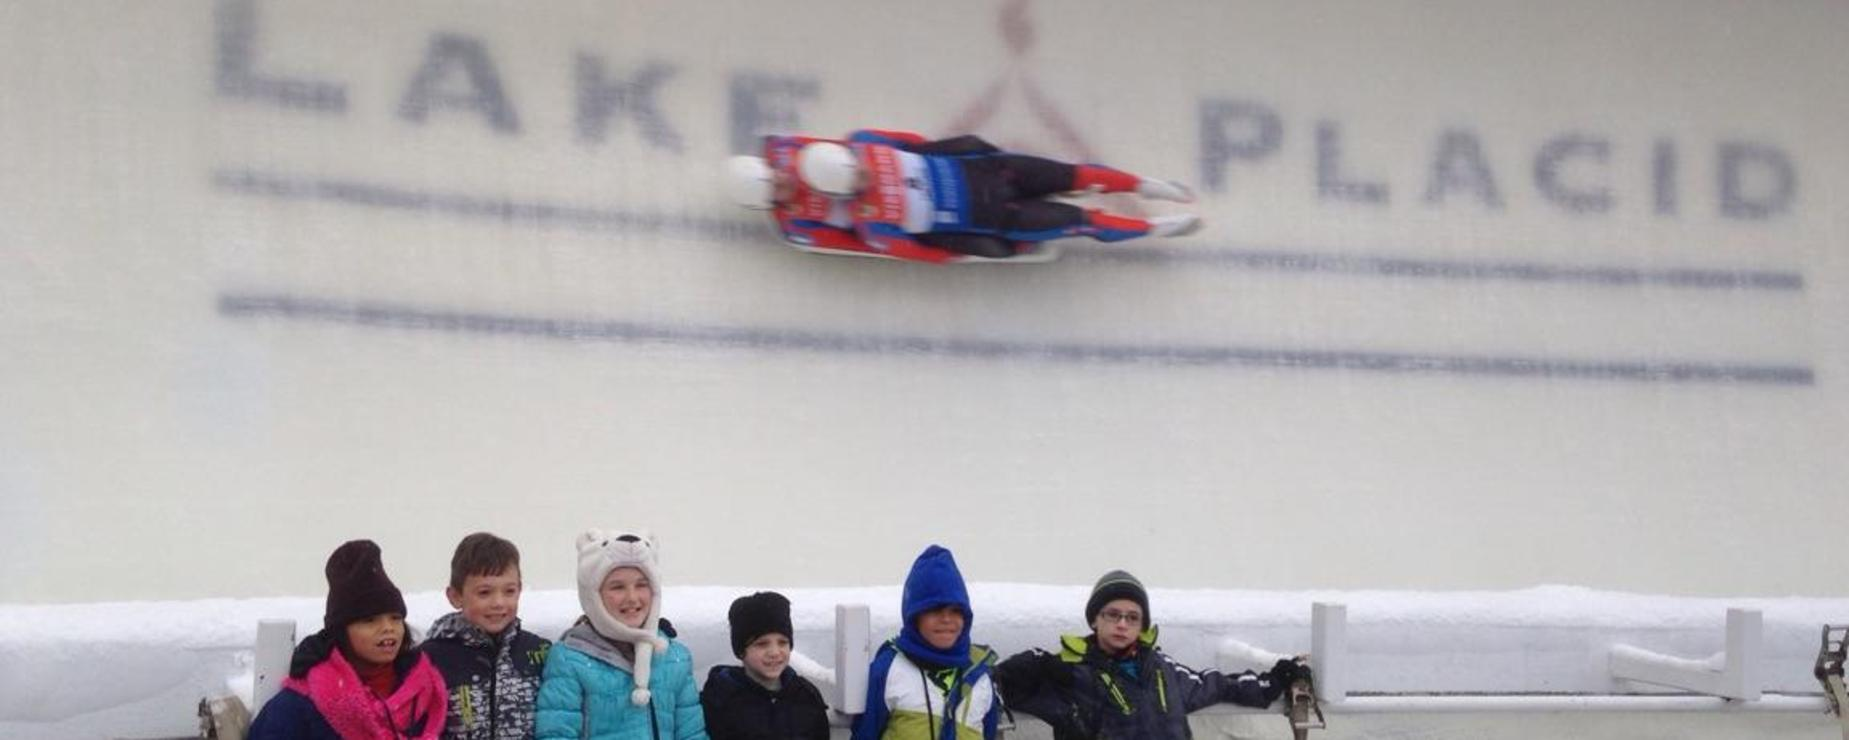 A group of elementary students bundled up in big jackets visiting the Lake Placid Olympic center.  In the background a luge team zooms by